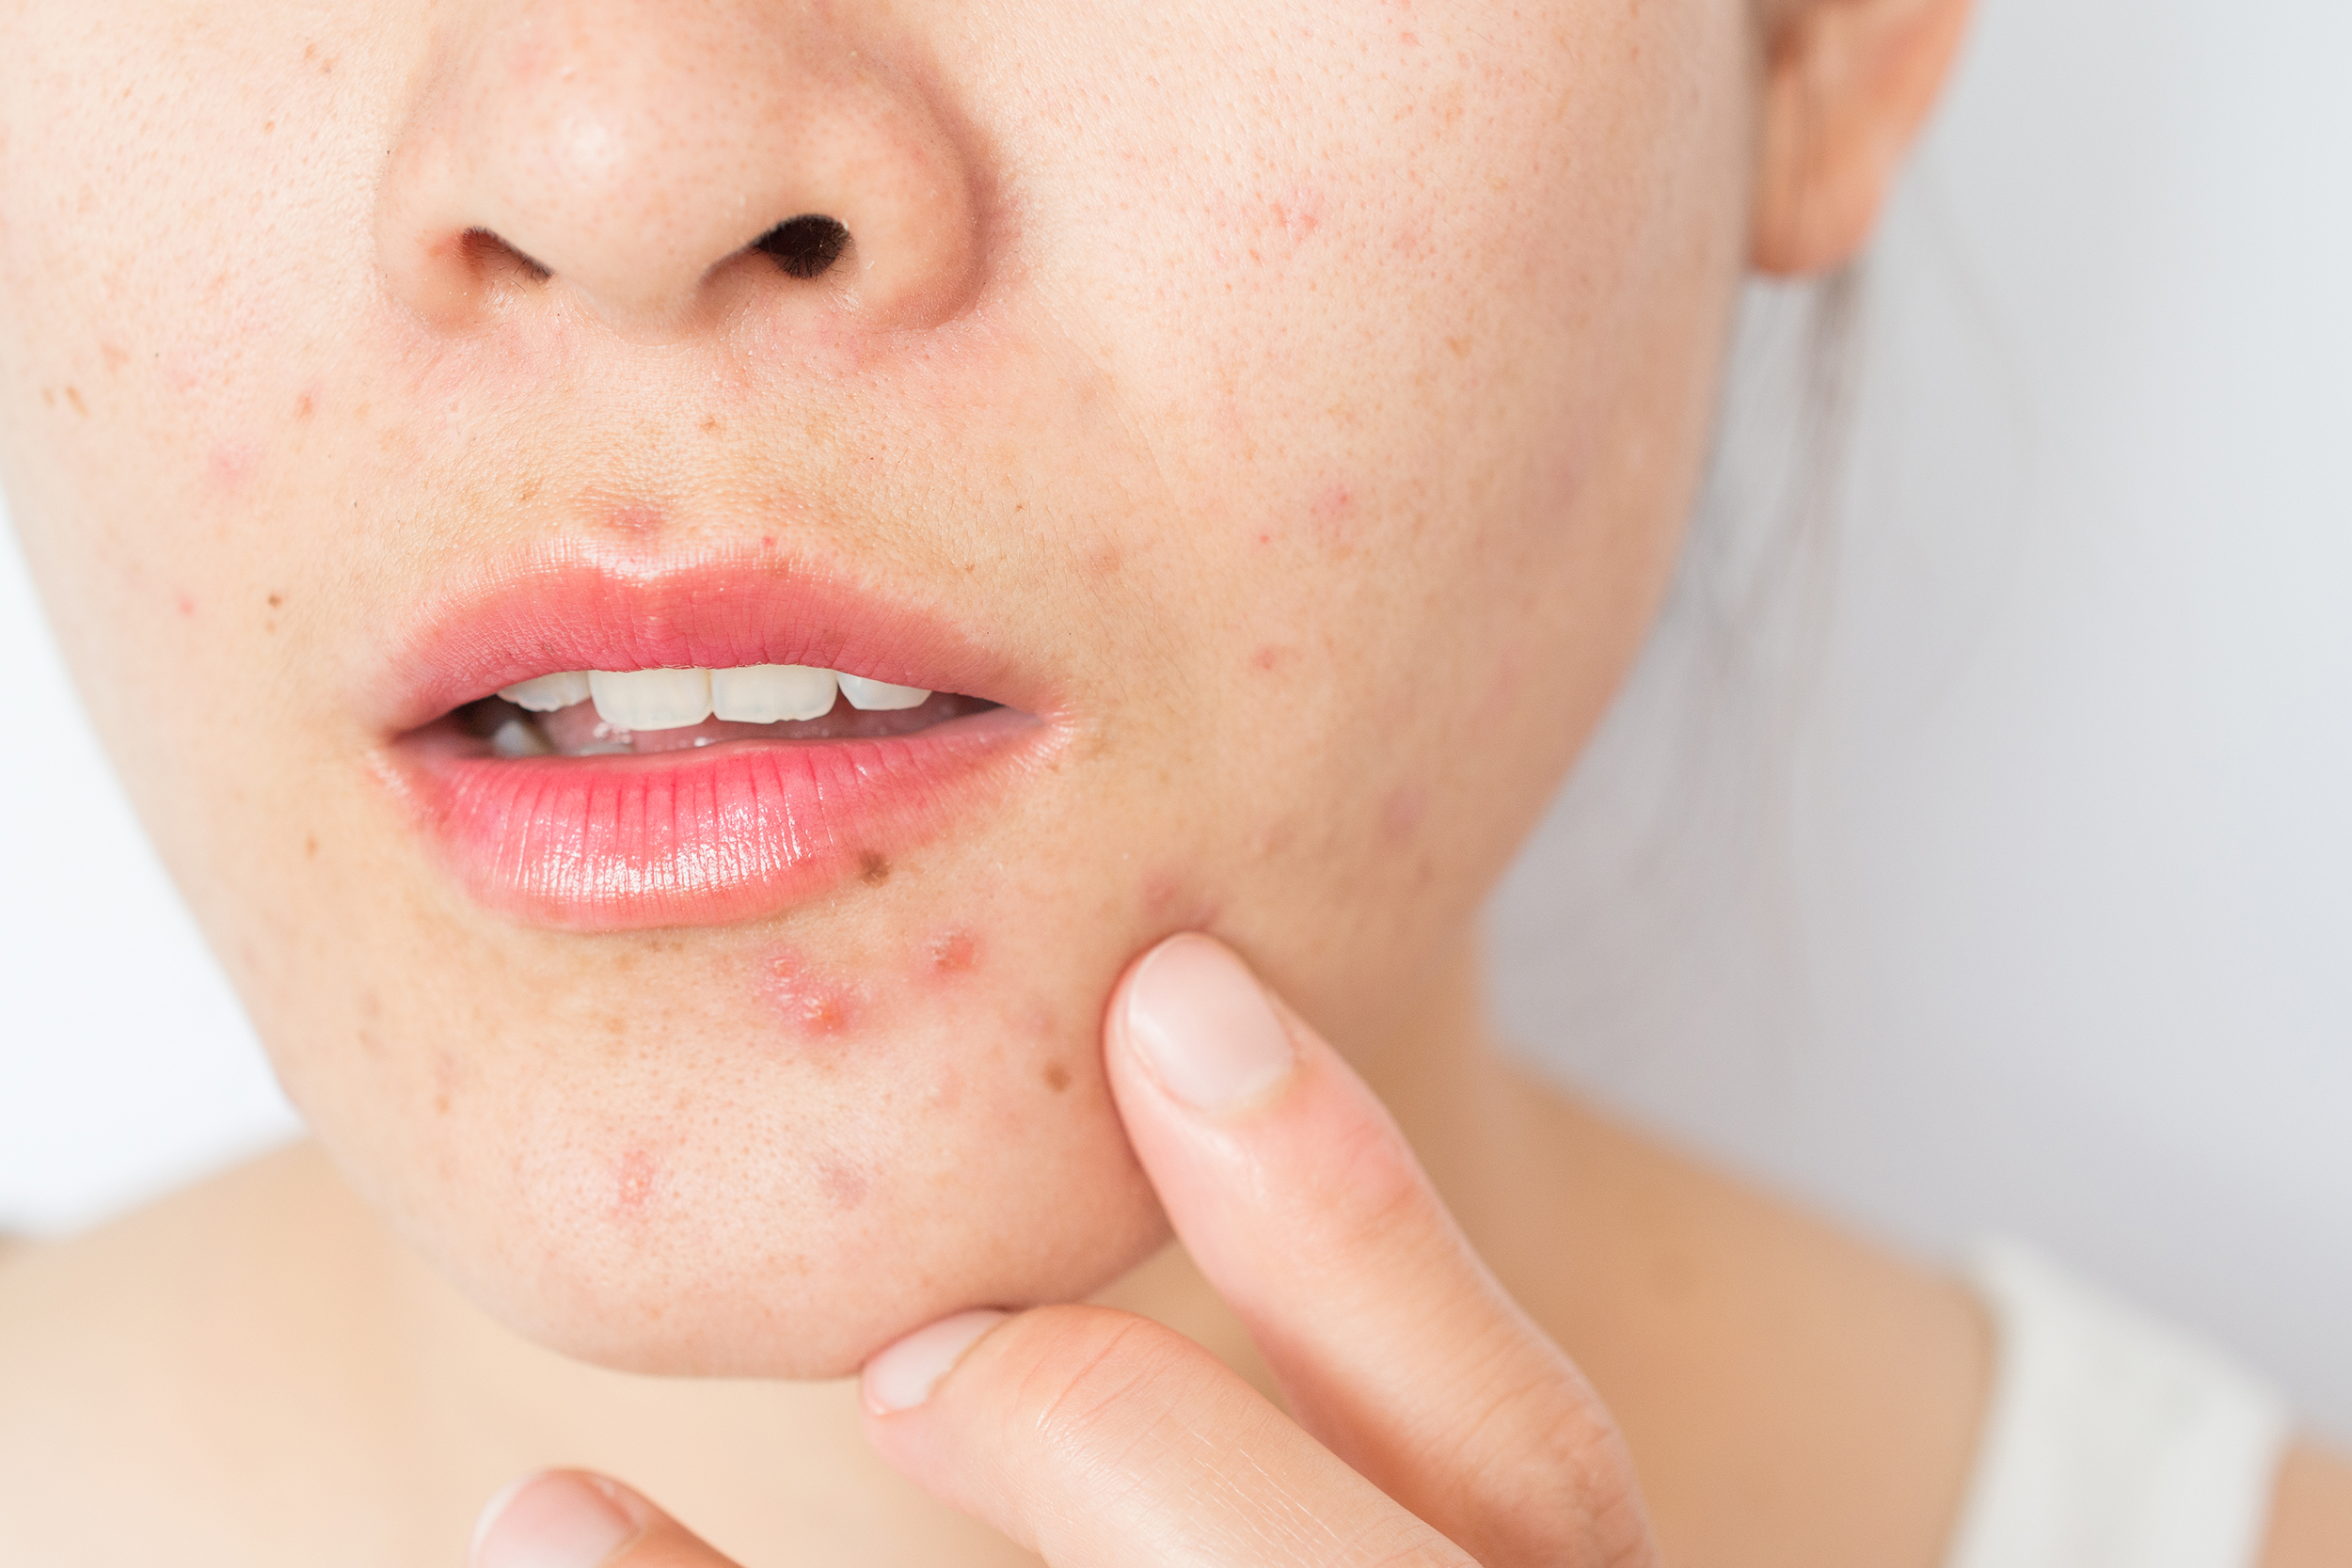 Skin Disorders Pictures Symptoms Causes And Help Today